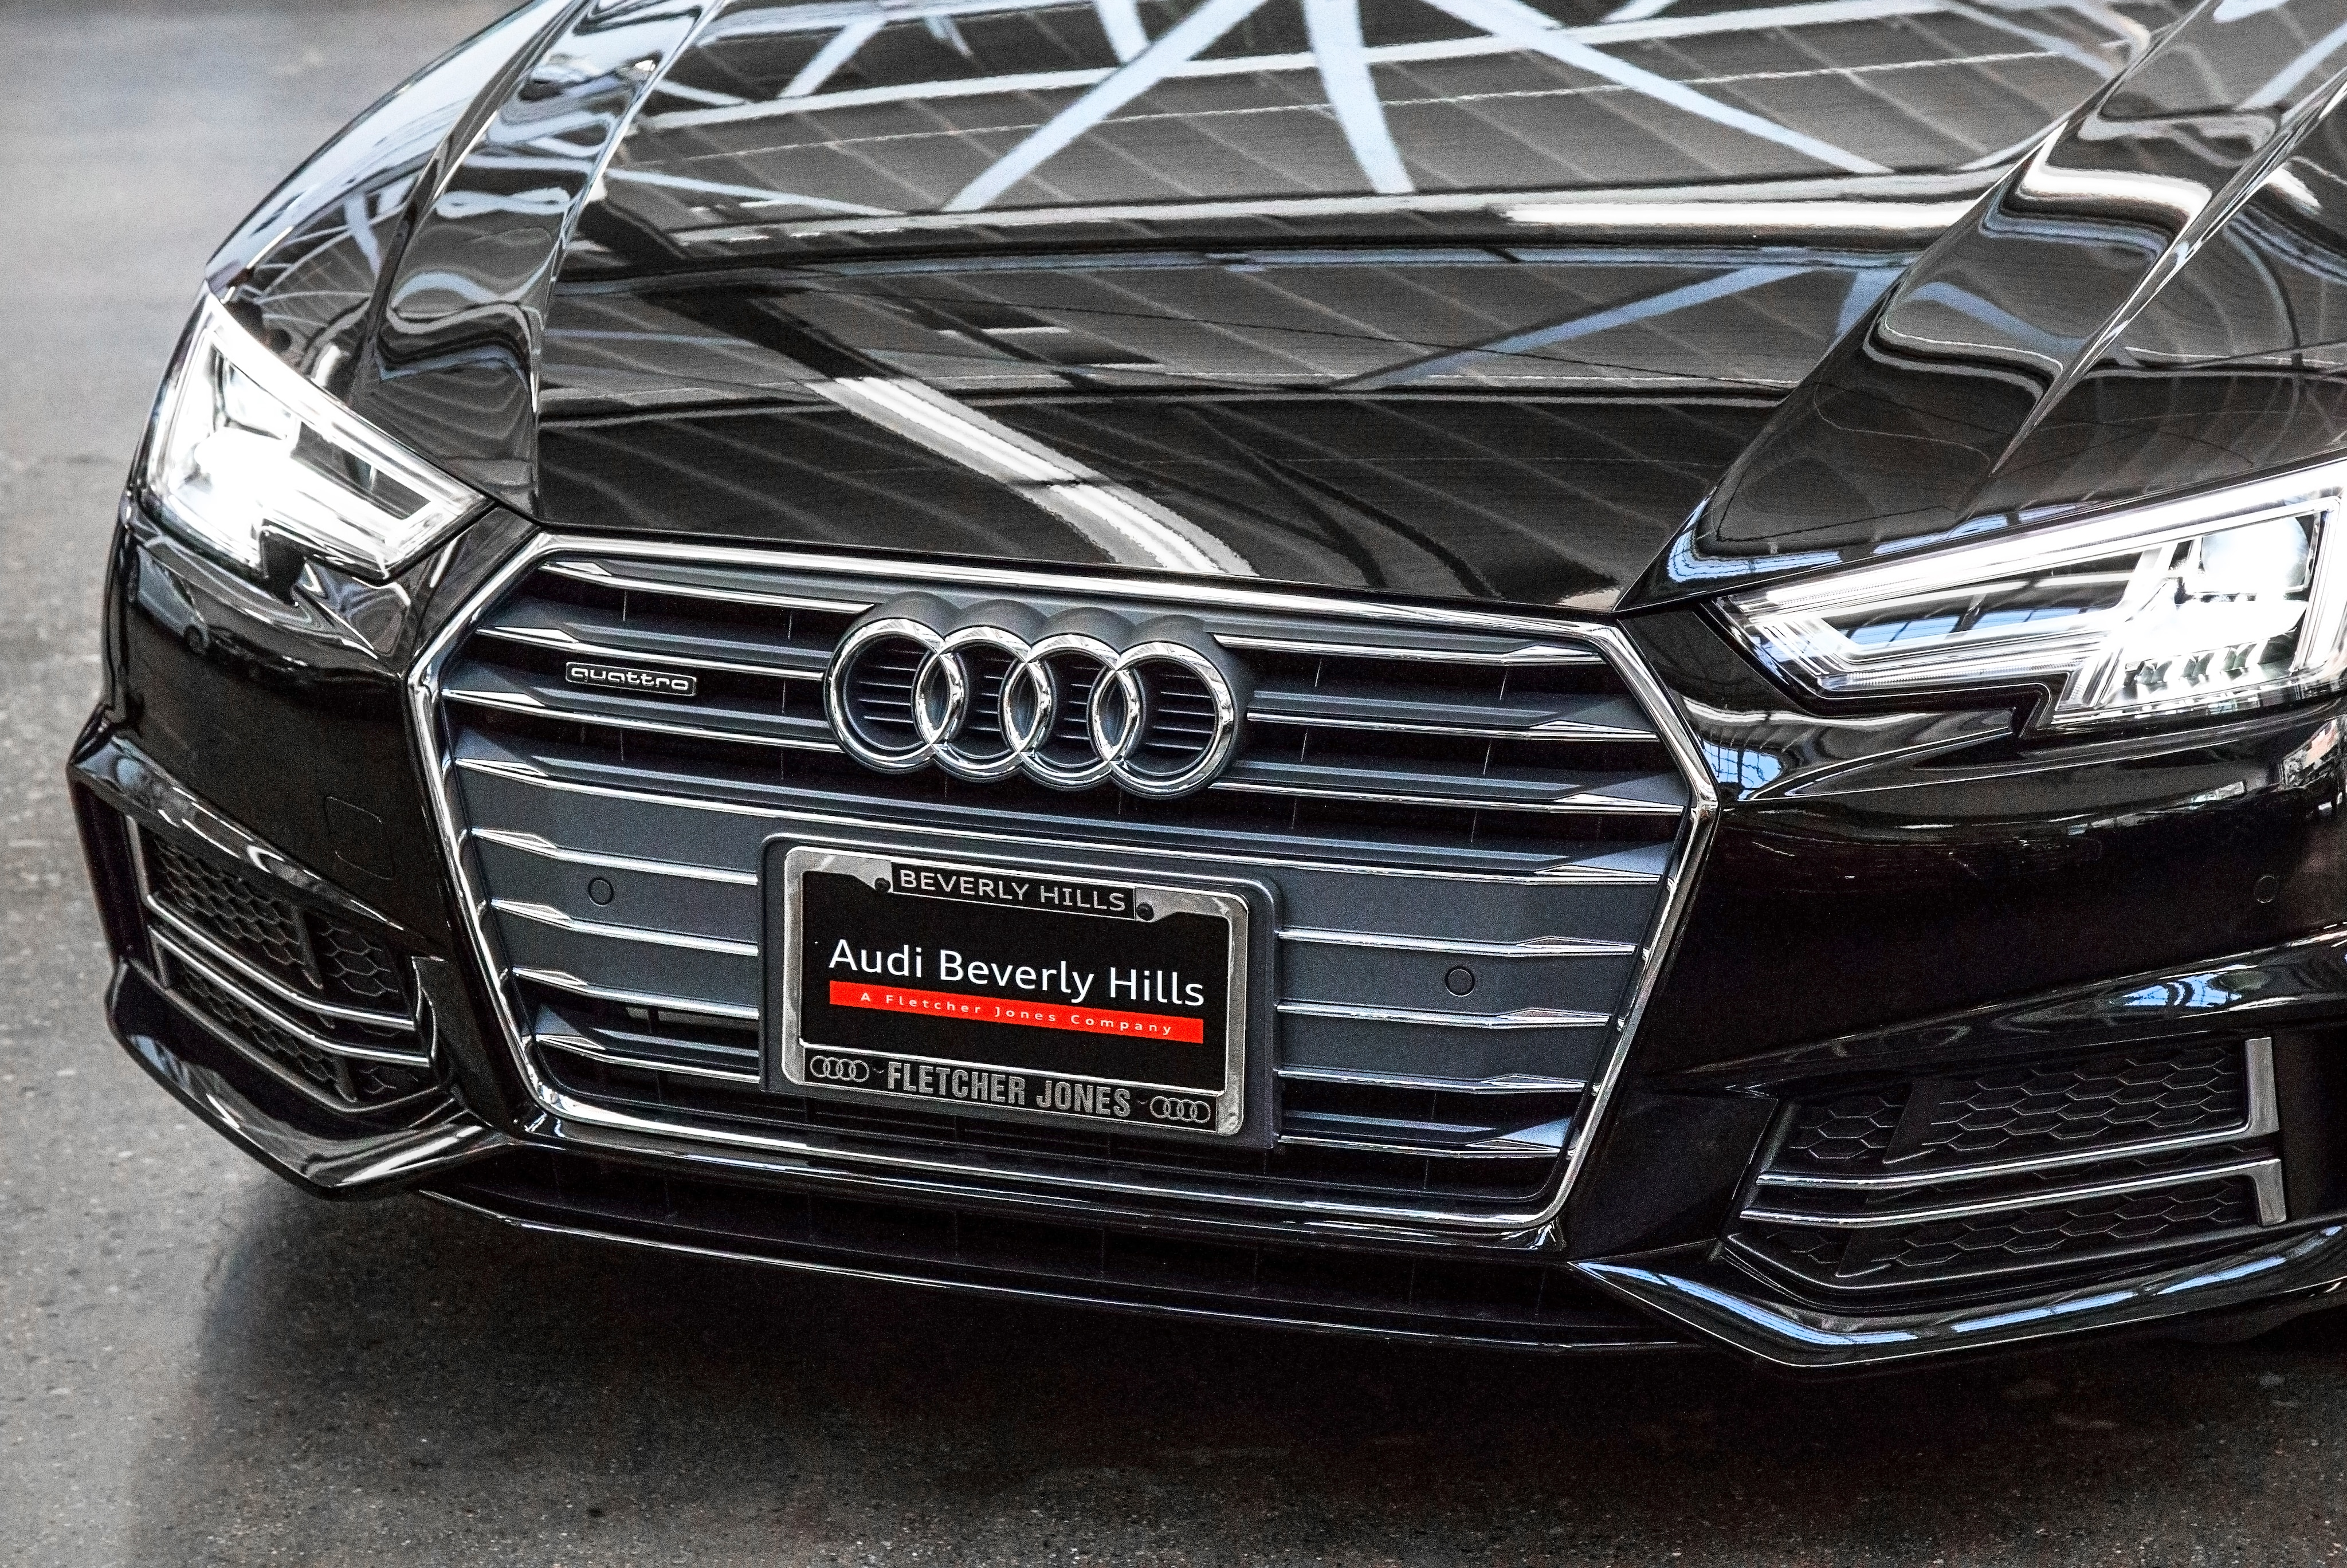 com morrison and mobile end communications edition fine special includes amelia of news newsroom event en audi audiusa year home season sales america